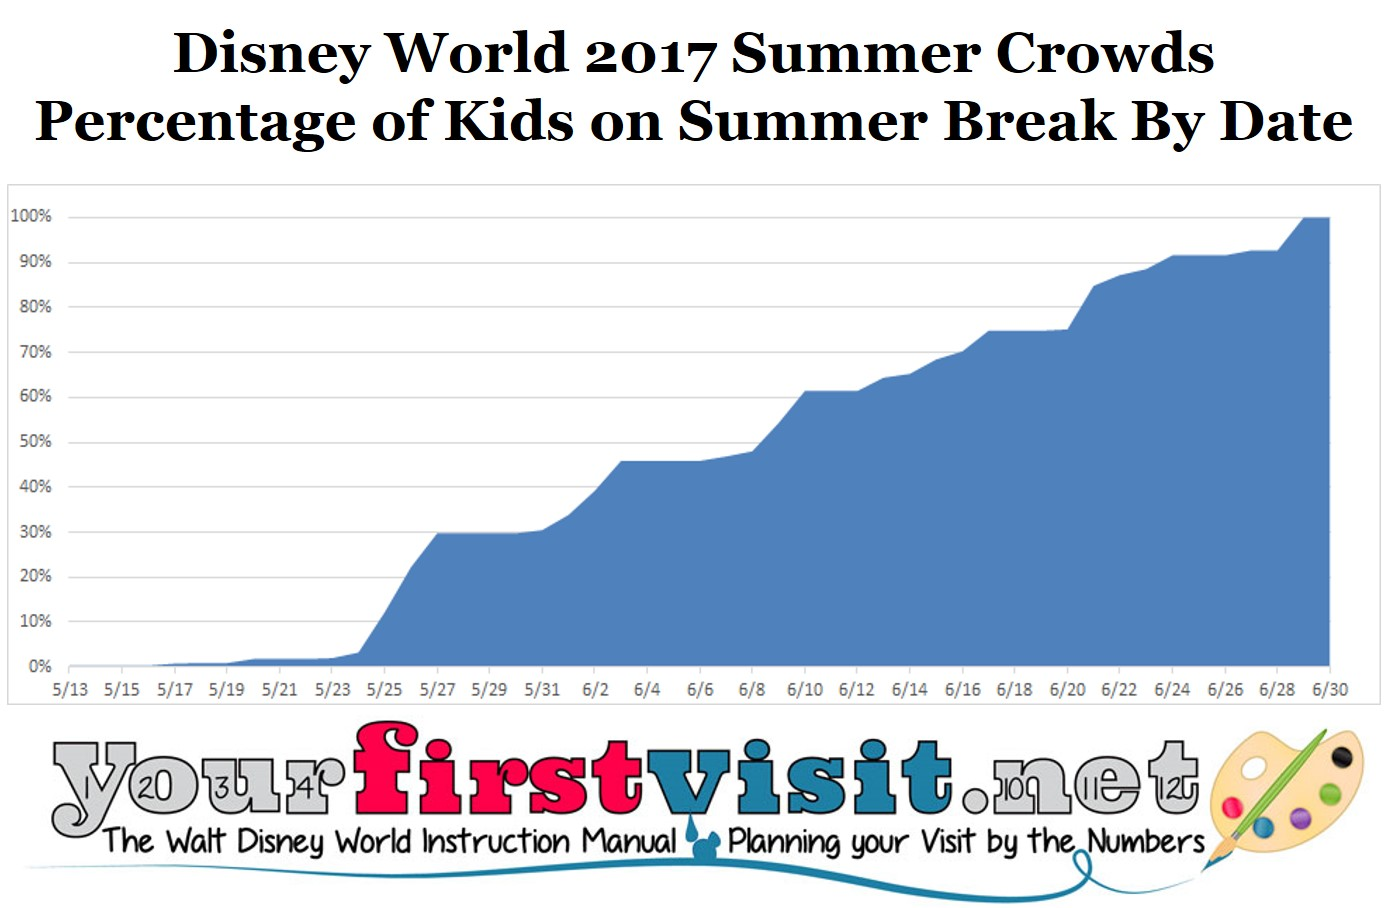 Disney World Summer 2017 Crowds from yourfirstvisit.net